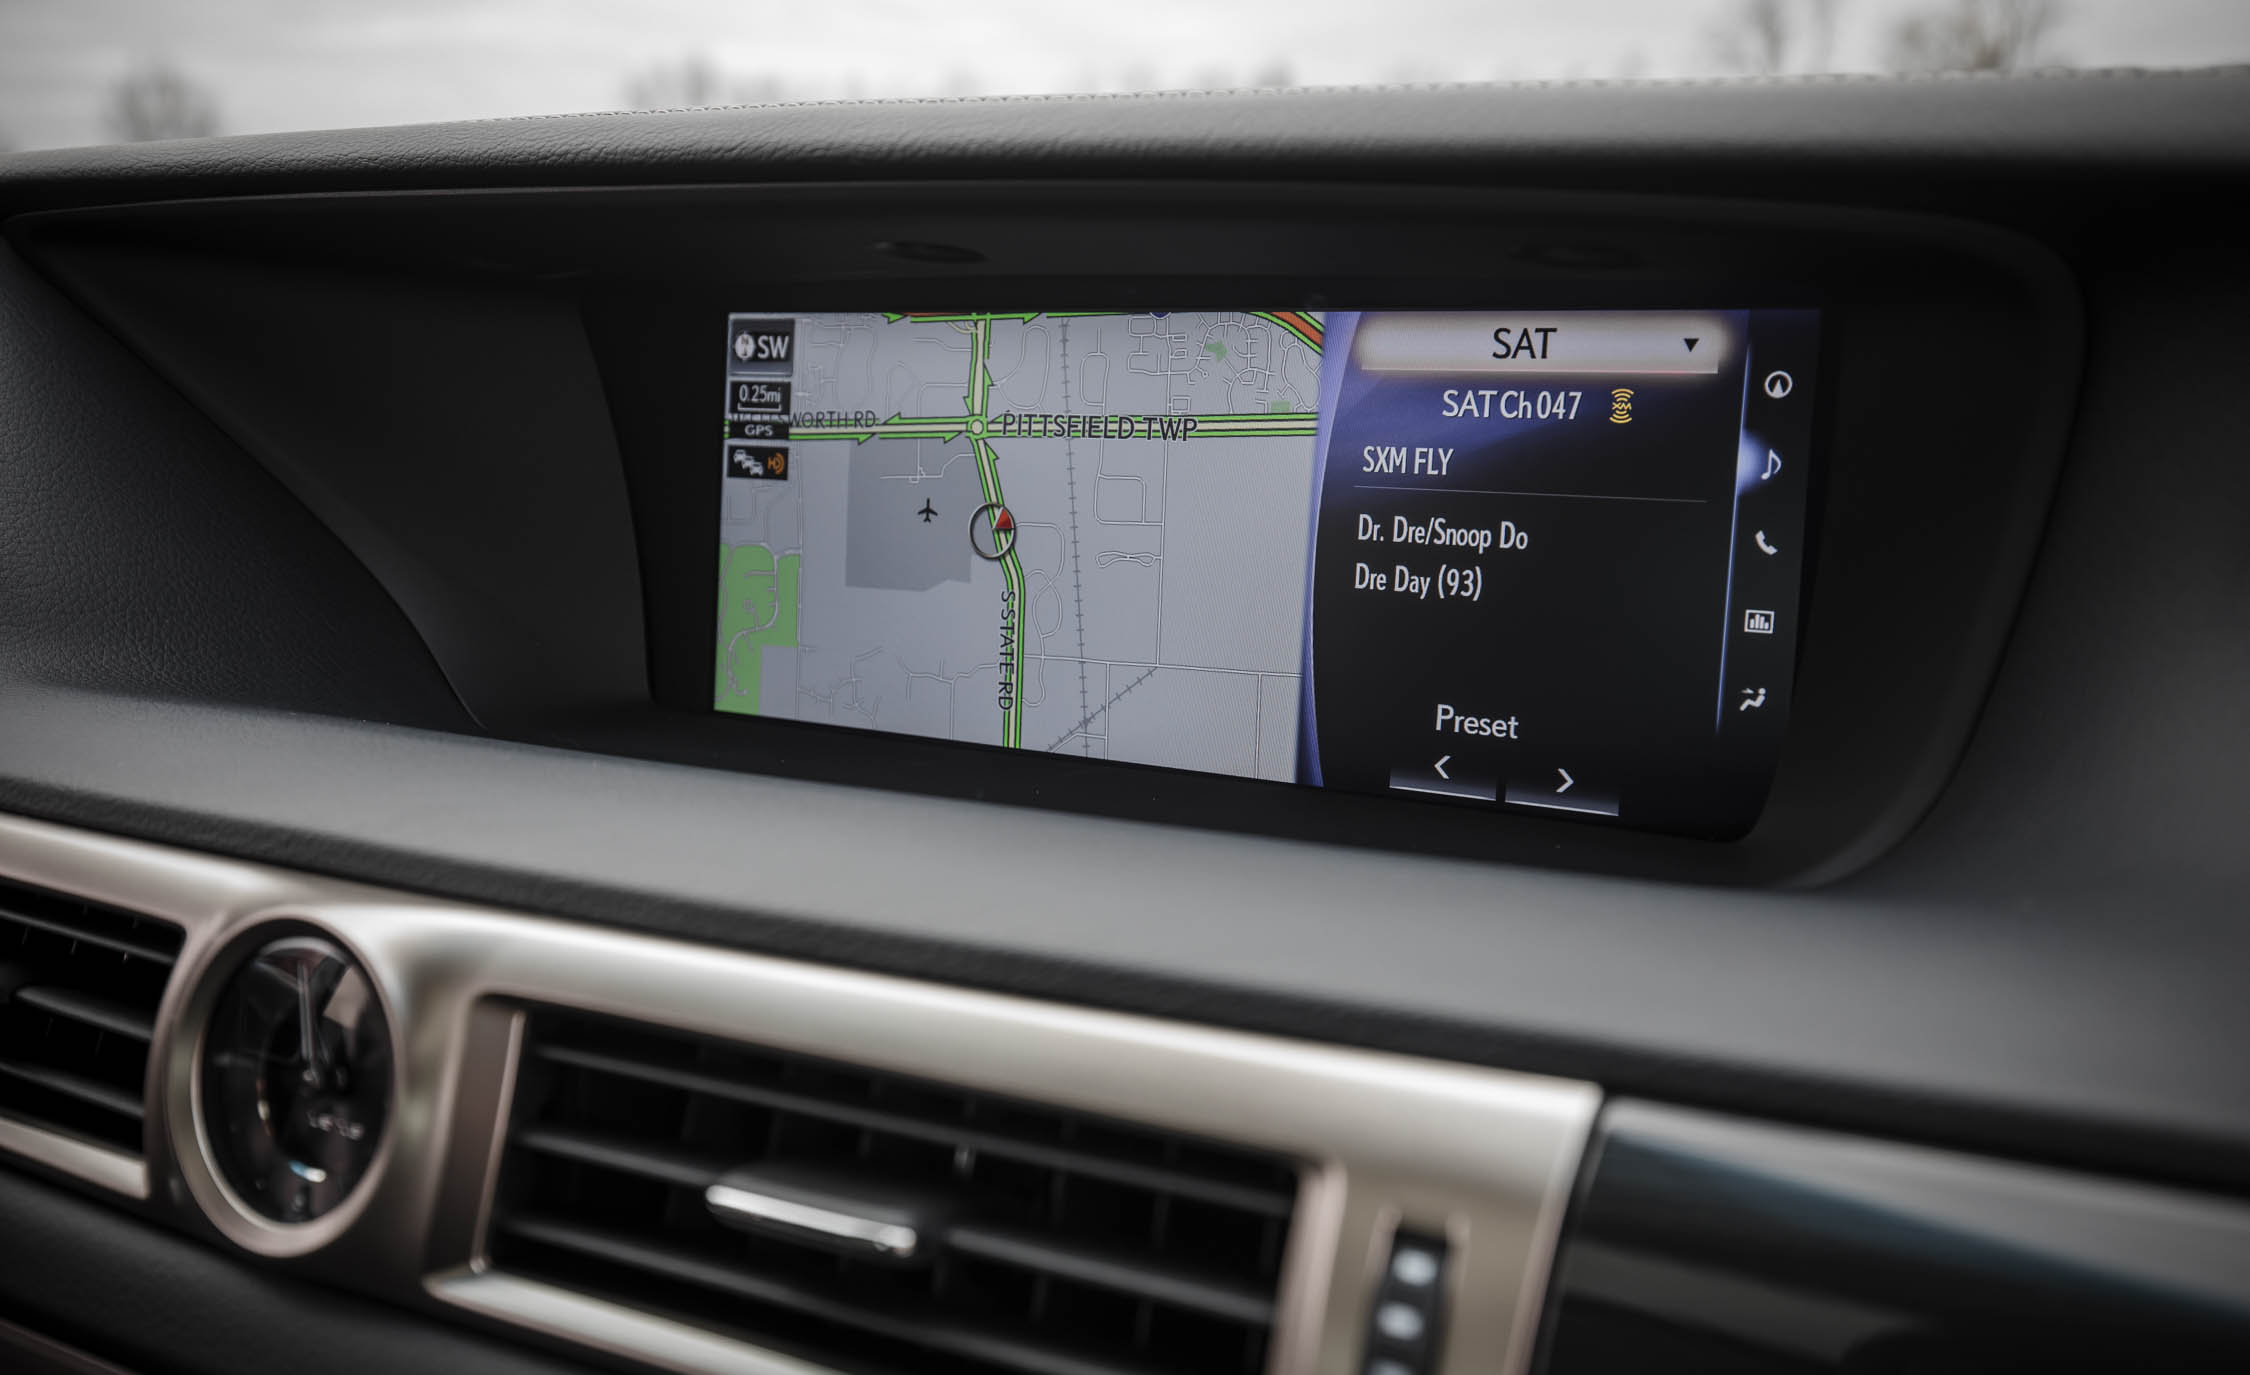 2017 Lexus GS200t Interior View Headunit Screen (Photo 24 of 26)